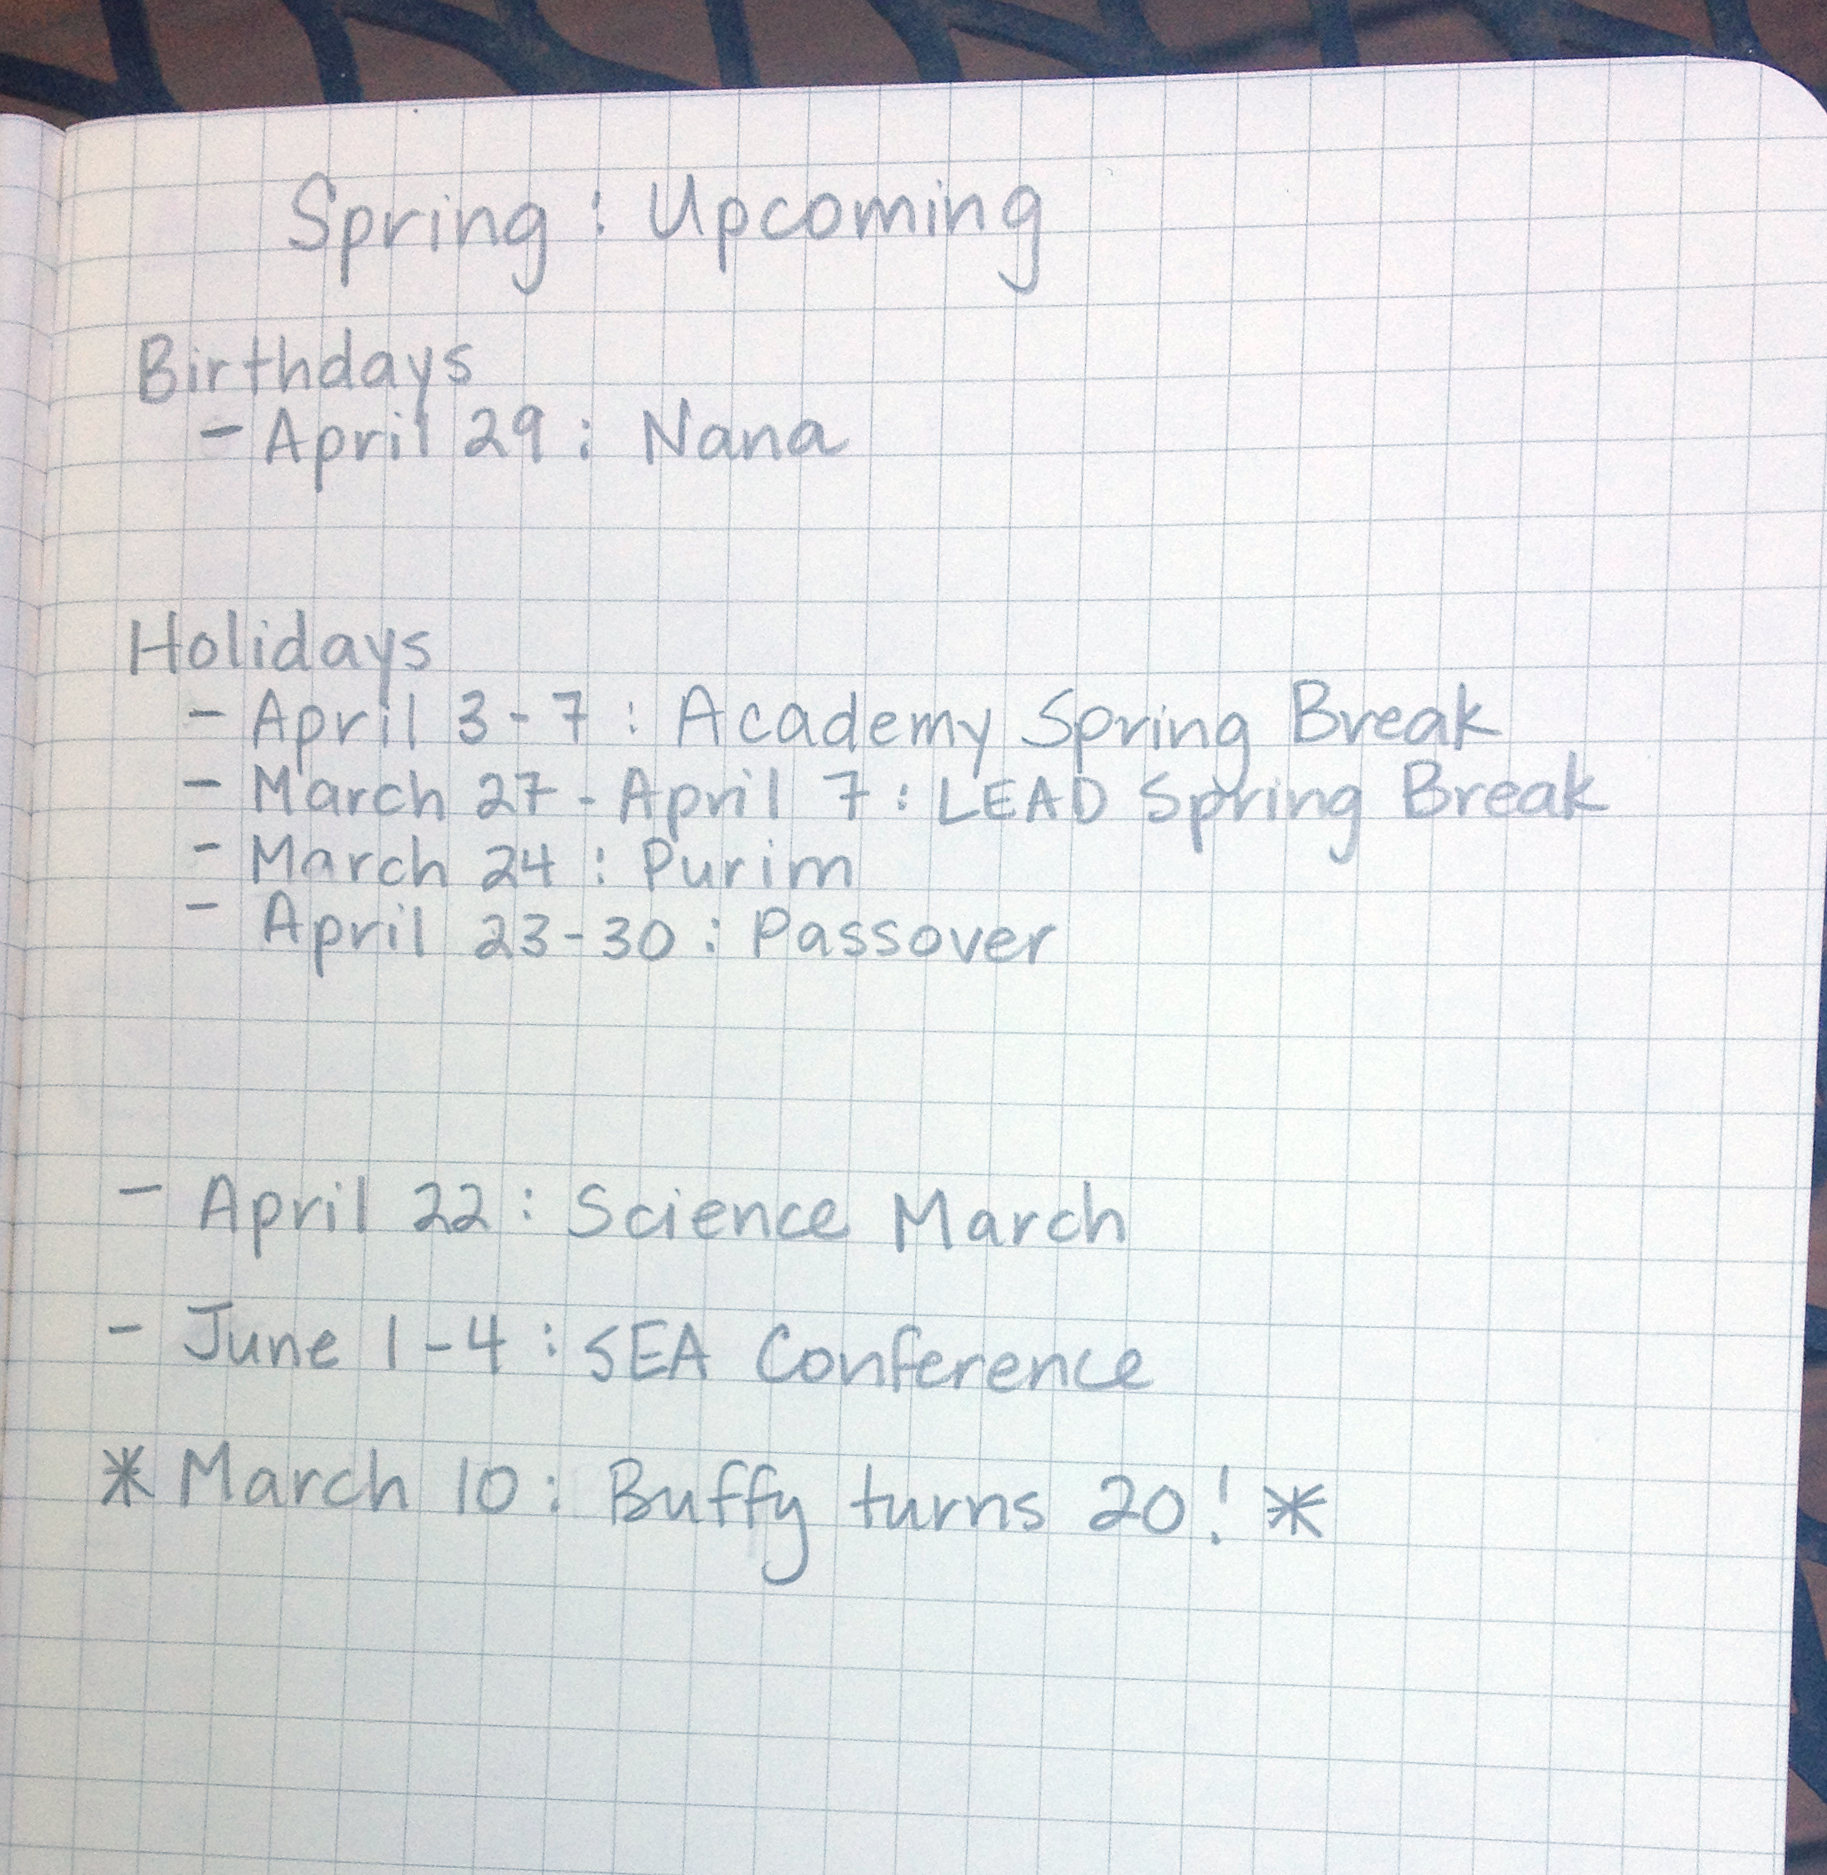 I do a seasonal checklist of upcoming events—birthdays, holidays, Buffy anniversaries, etc. that I can quickly refer to